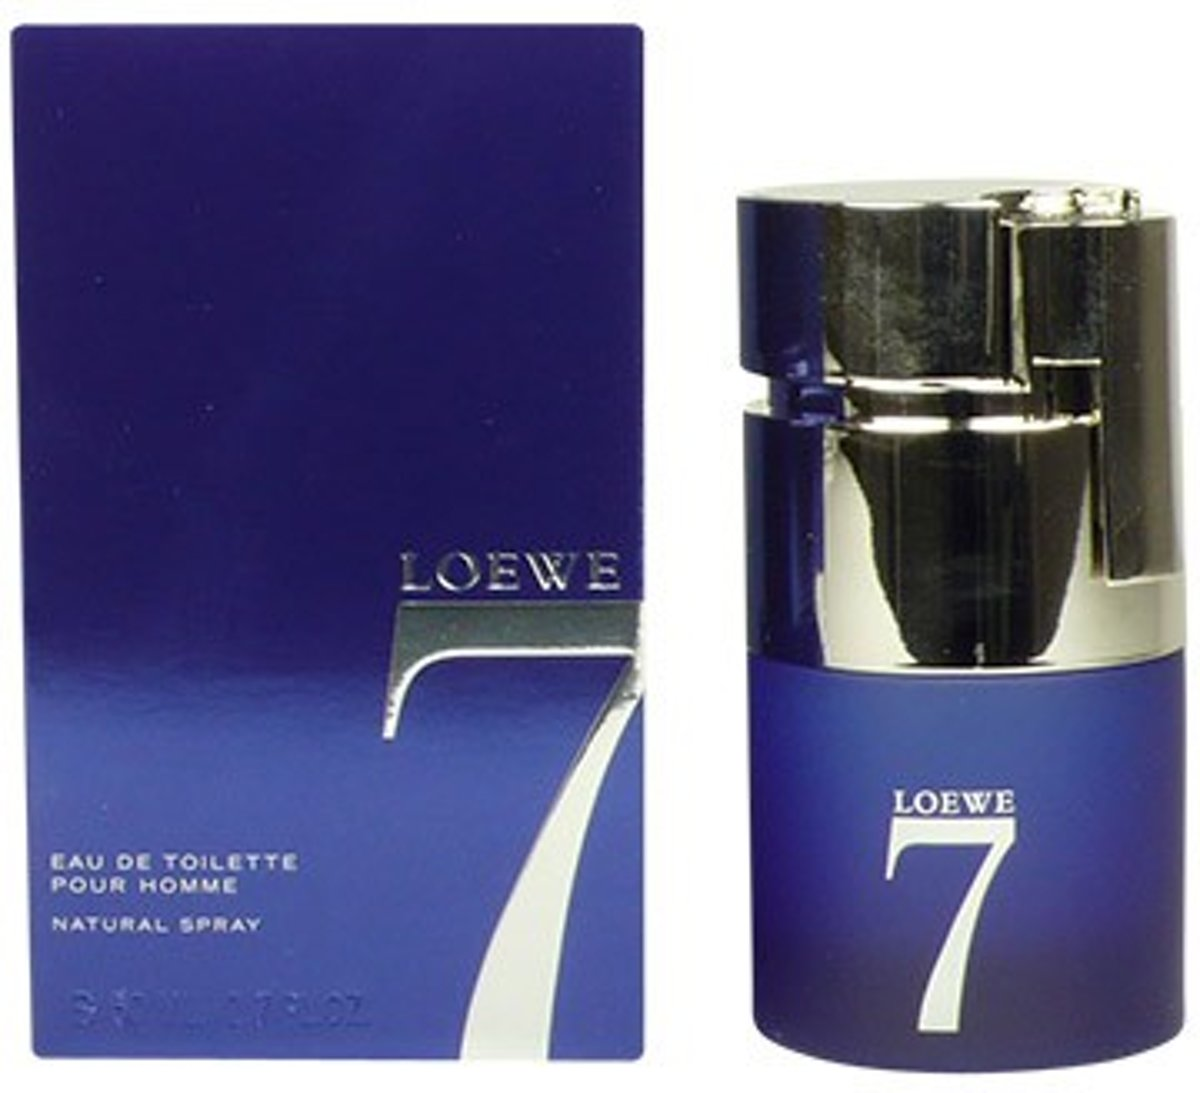 MULTI BUNDEL 2 stuks LOEWE 7 Eau de Toilette Spray 50 ml